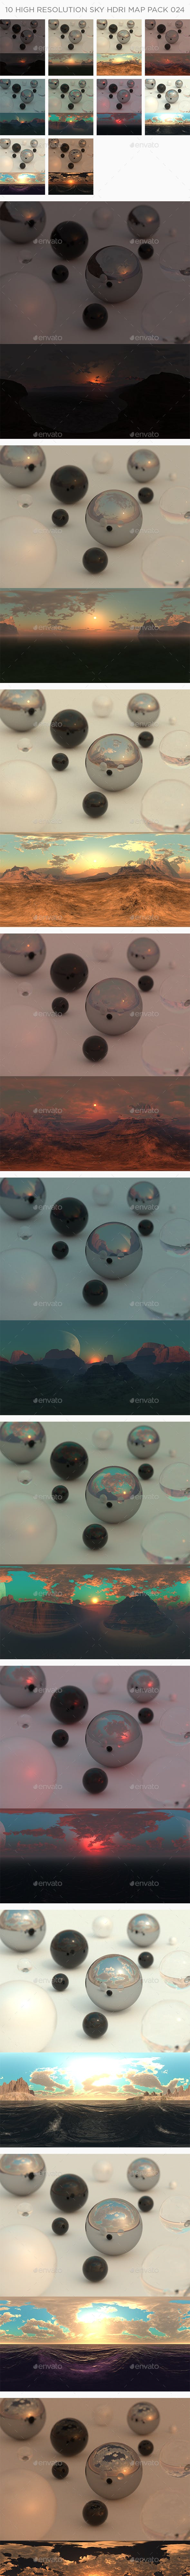 10 High Resolution Sky HDRi Maps Pack 024 - 3DOcean Item for Sale